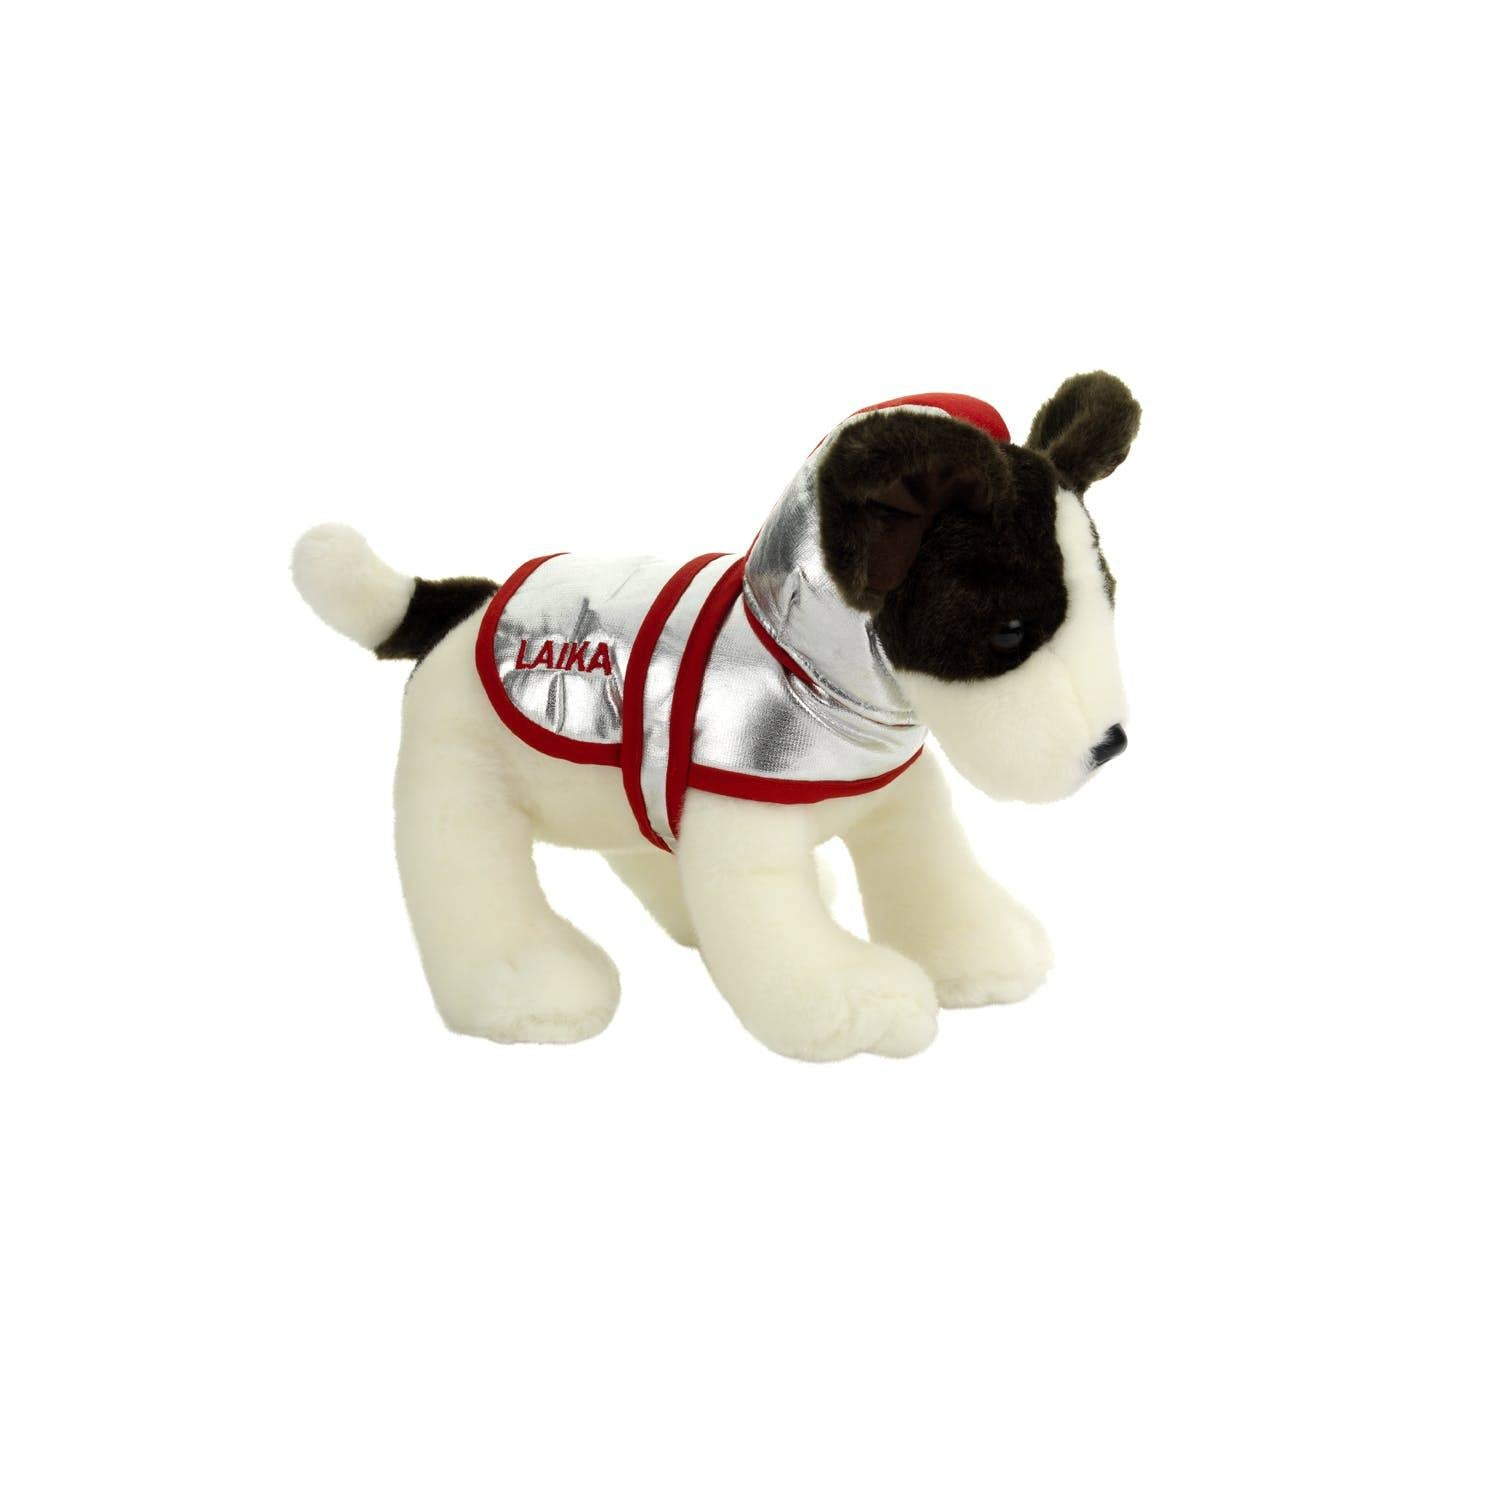 Laika Cuddly Toy Dog-3